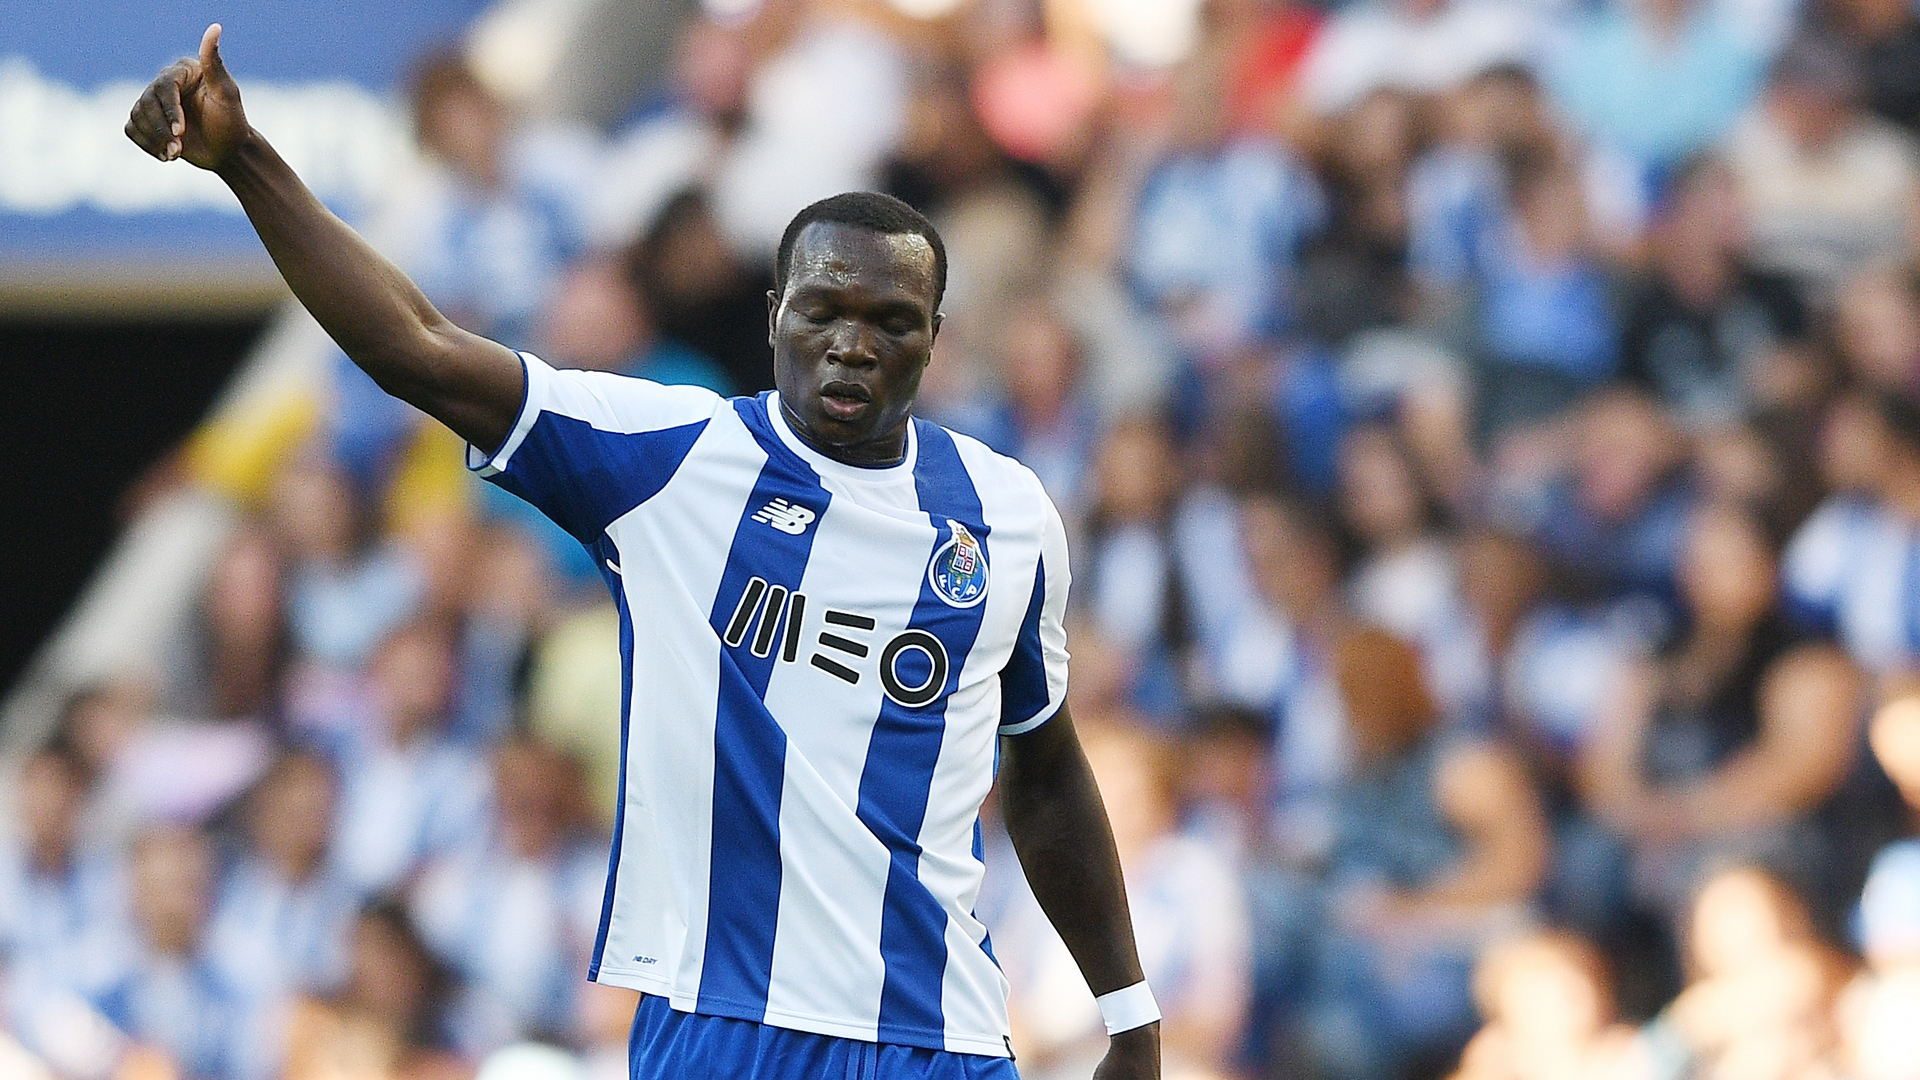 Vincent Aboubakar prolonge à Porto — Officiel